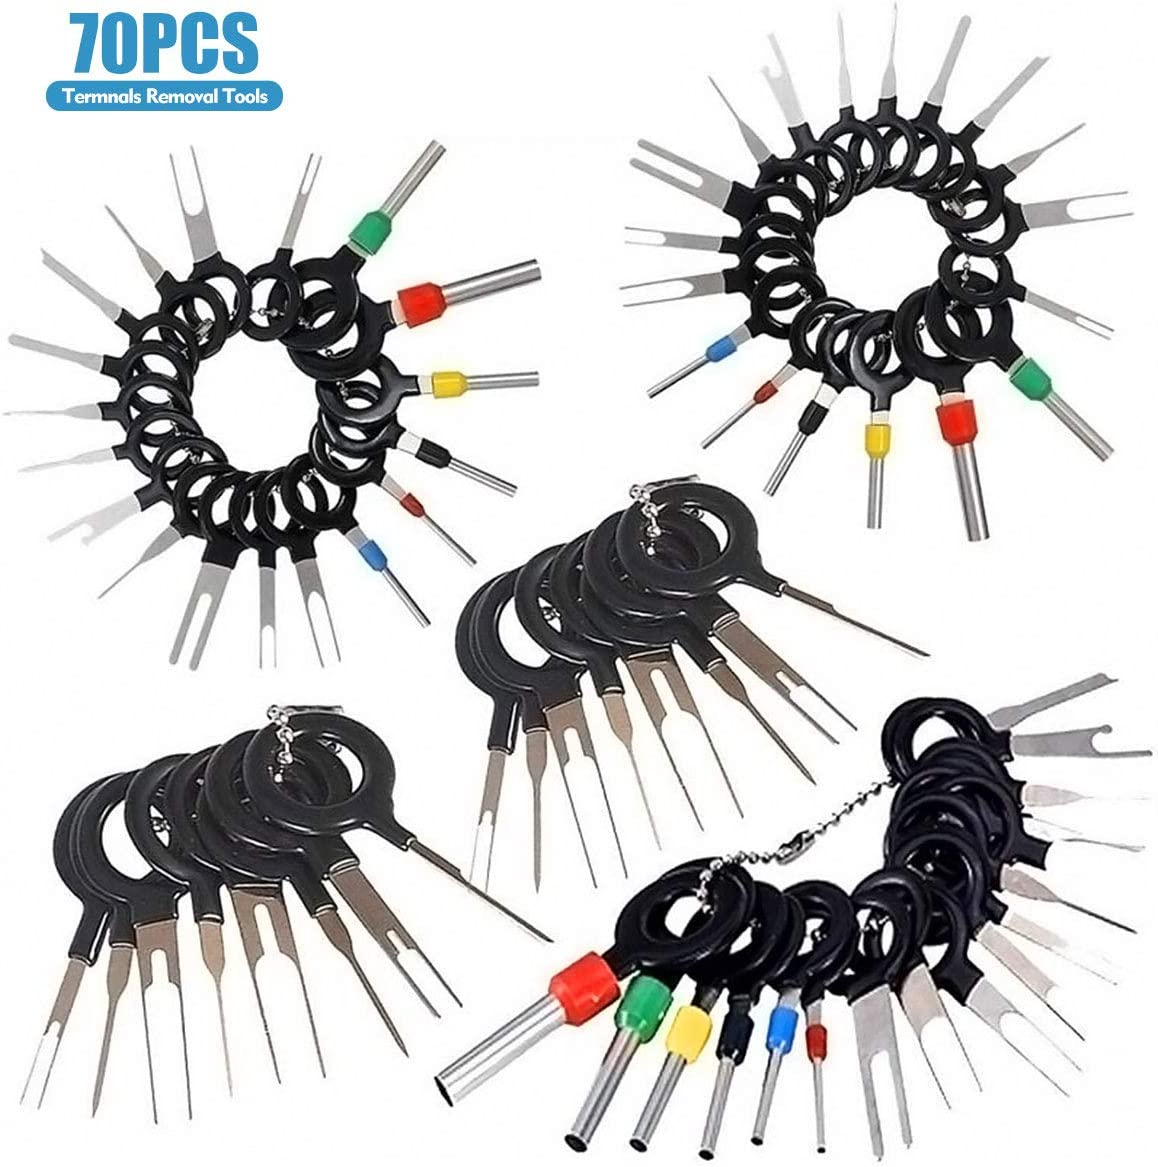 Installation Accessories & Harnesses Electronics 70pcs Ejector Kit ...